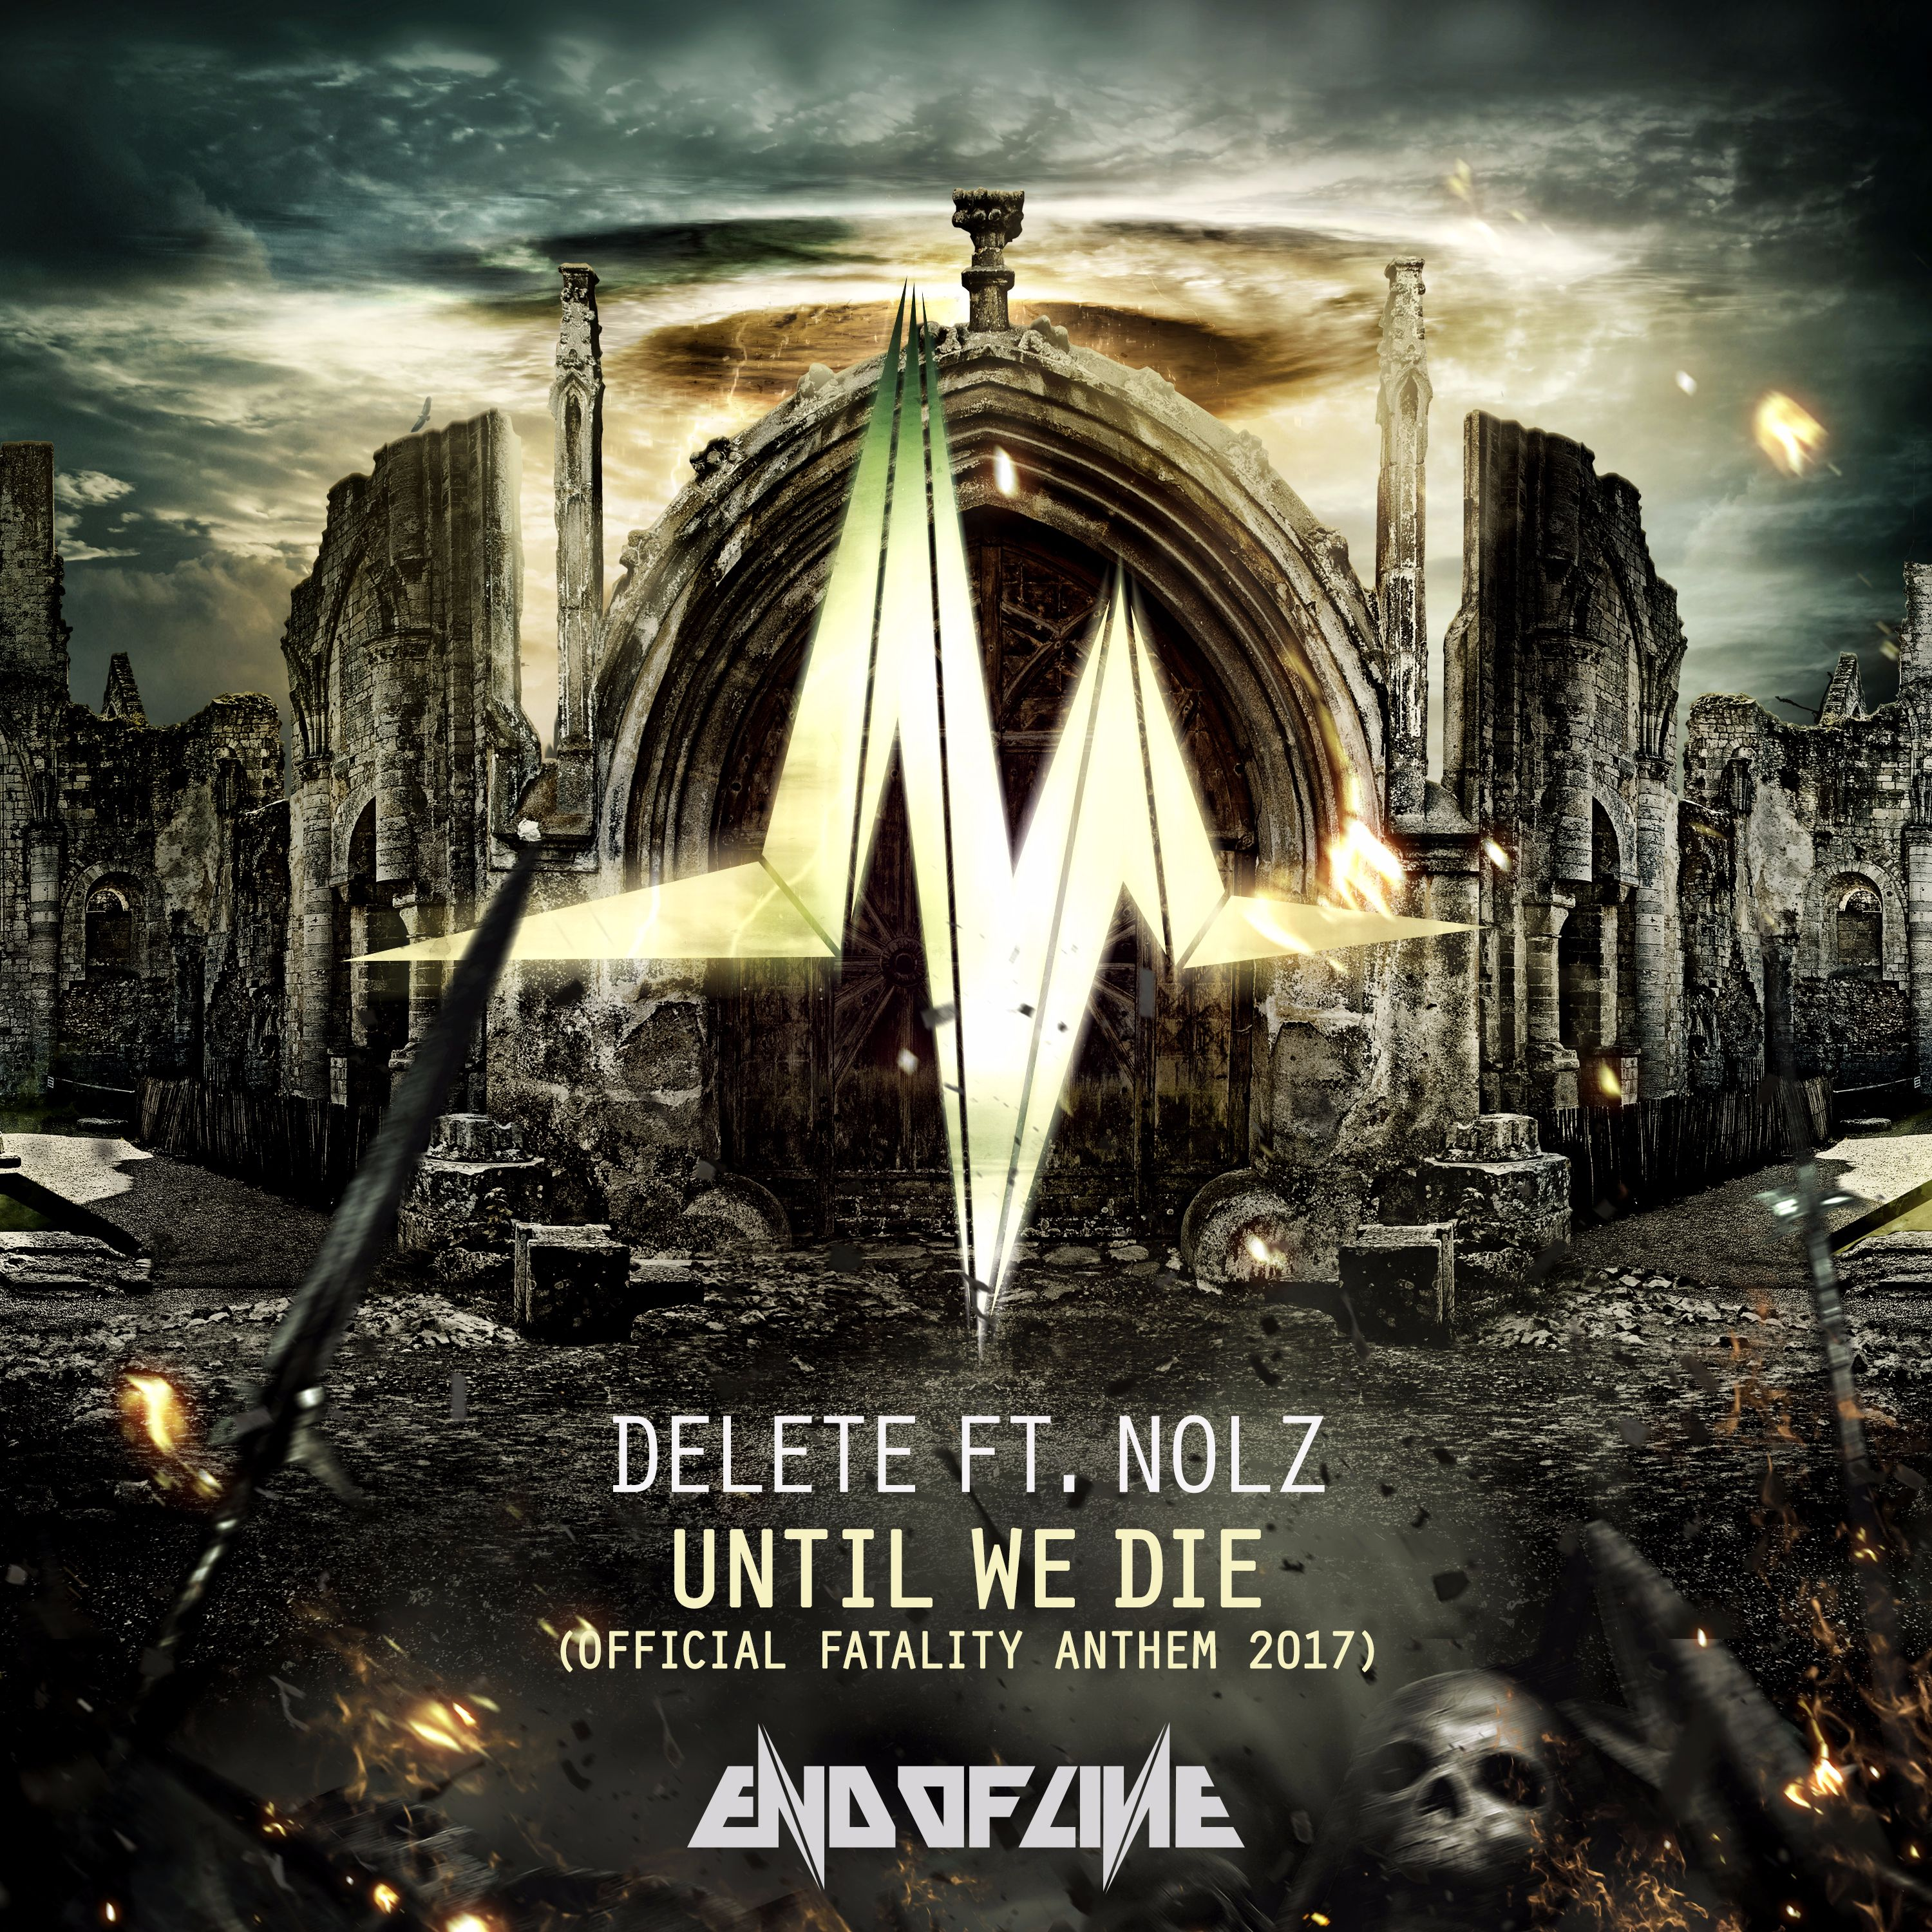 Delete ft. Nolz - Until We Die (Official Fatality Anthem 2017) [END OF LINE RECORDINGS] EOL052